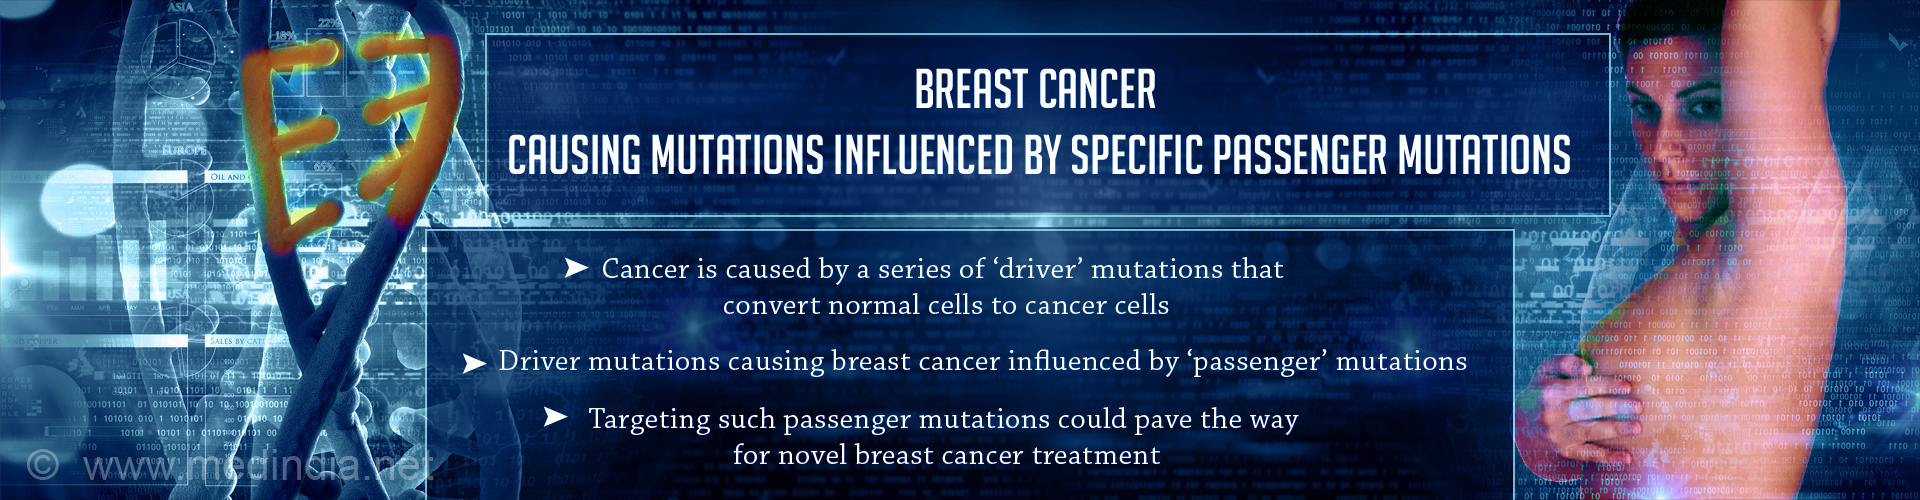 Mutations That Usher in Genetic Changes Leading to Breast Cancer Unveiled